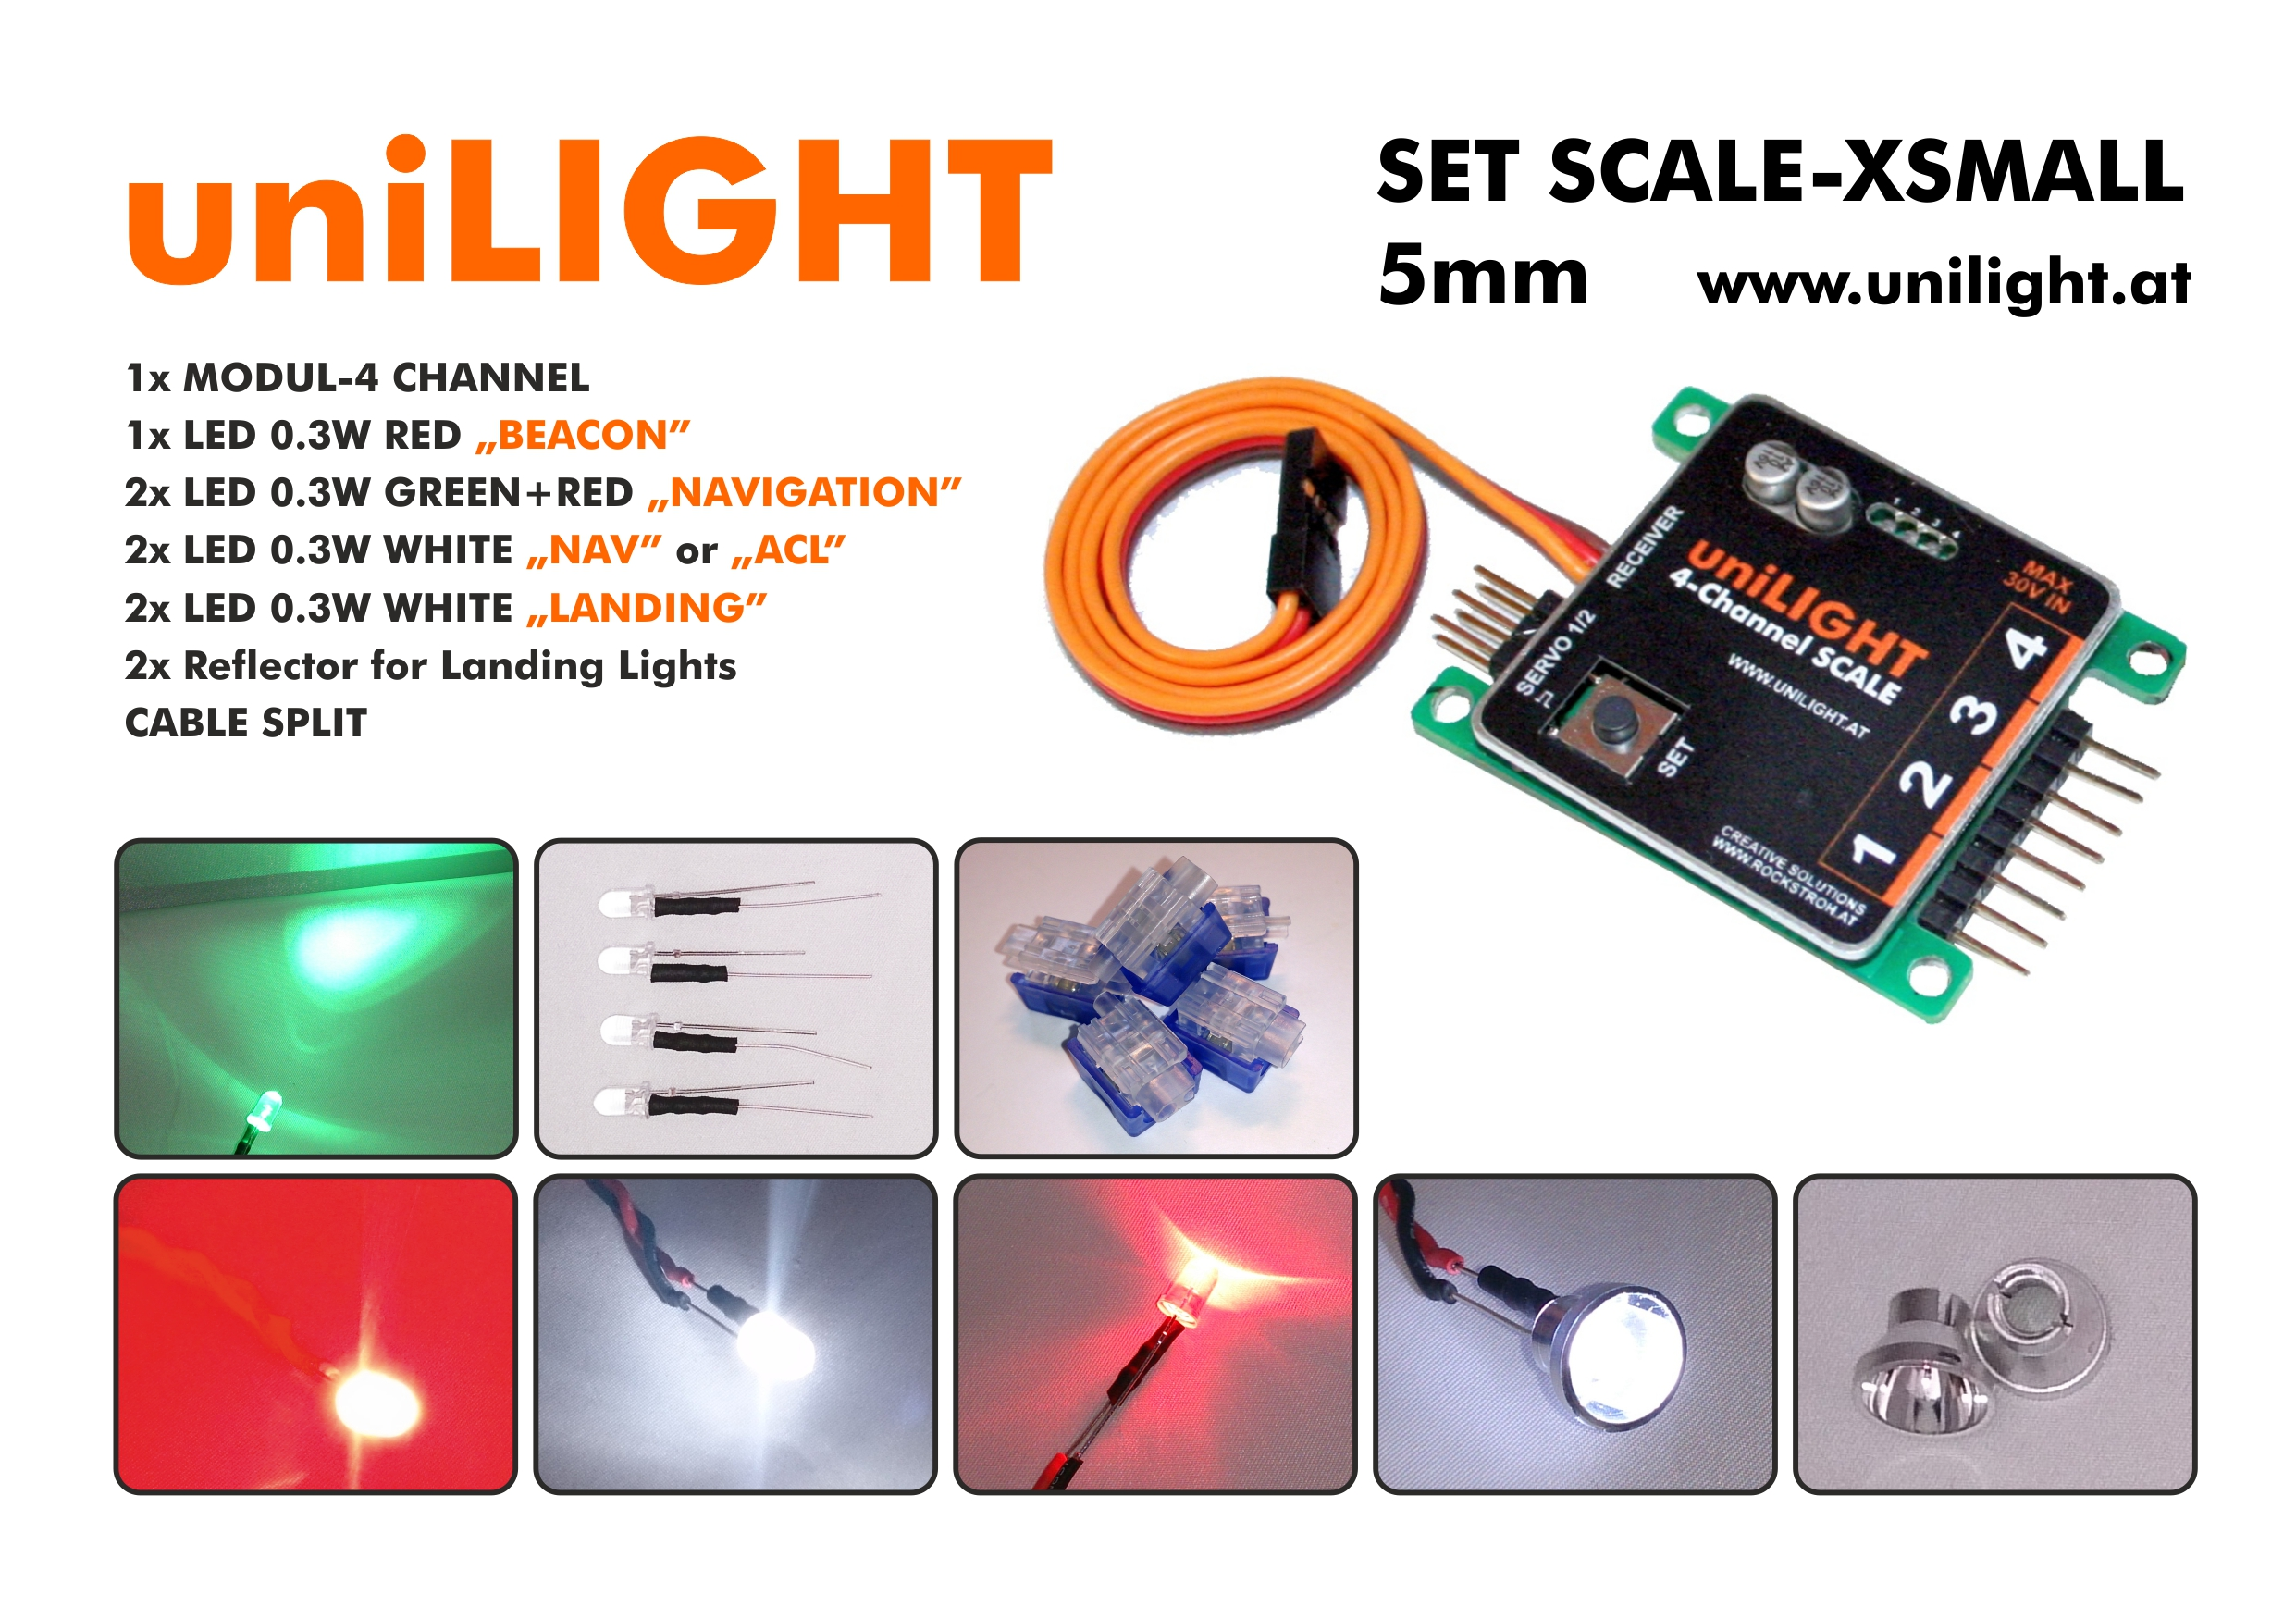 SCALE-XS Beleuchtungsset 5mm